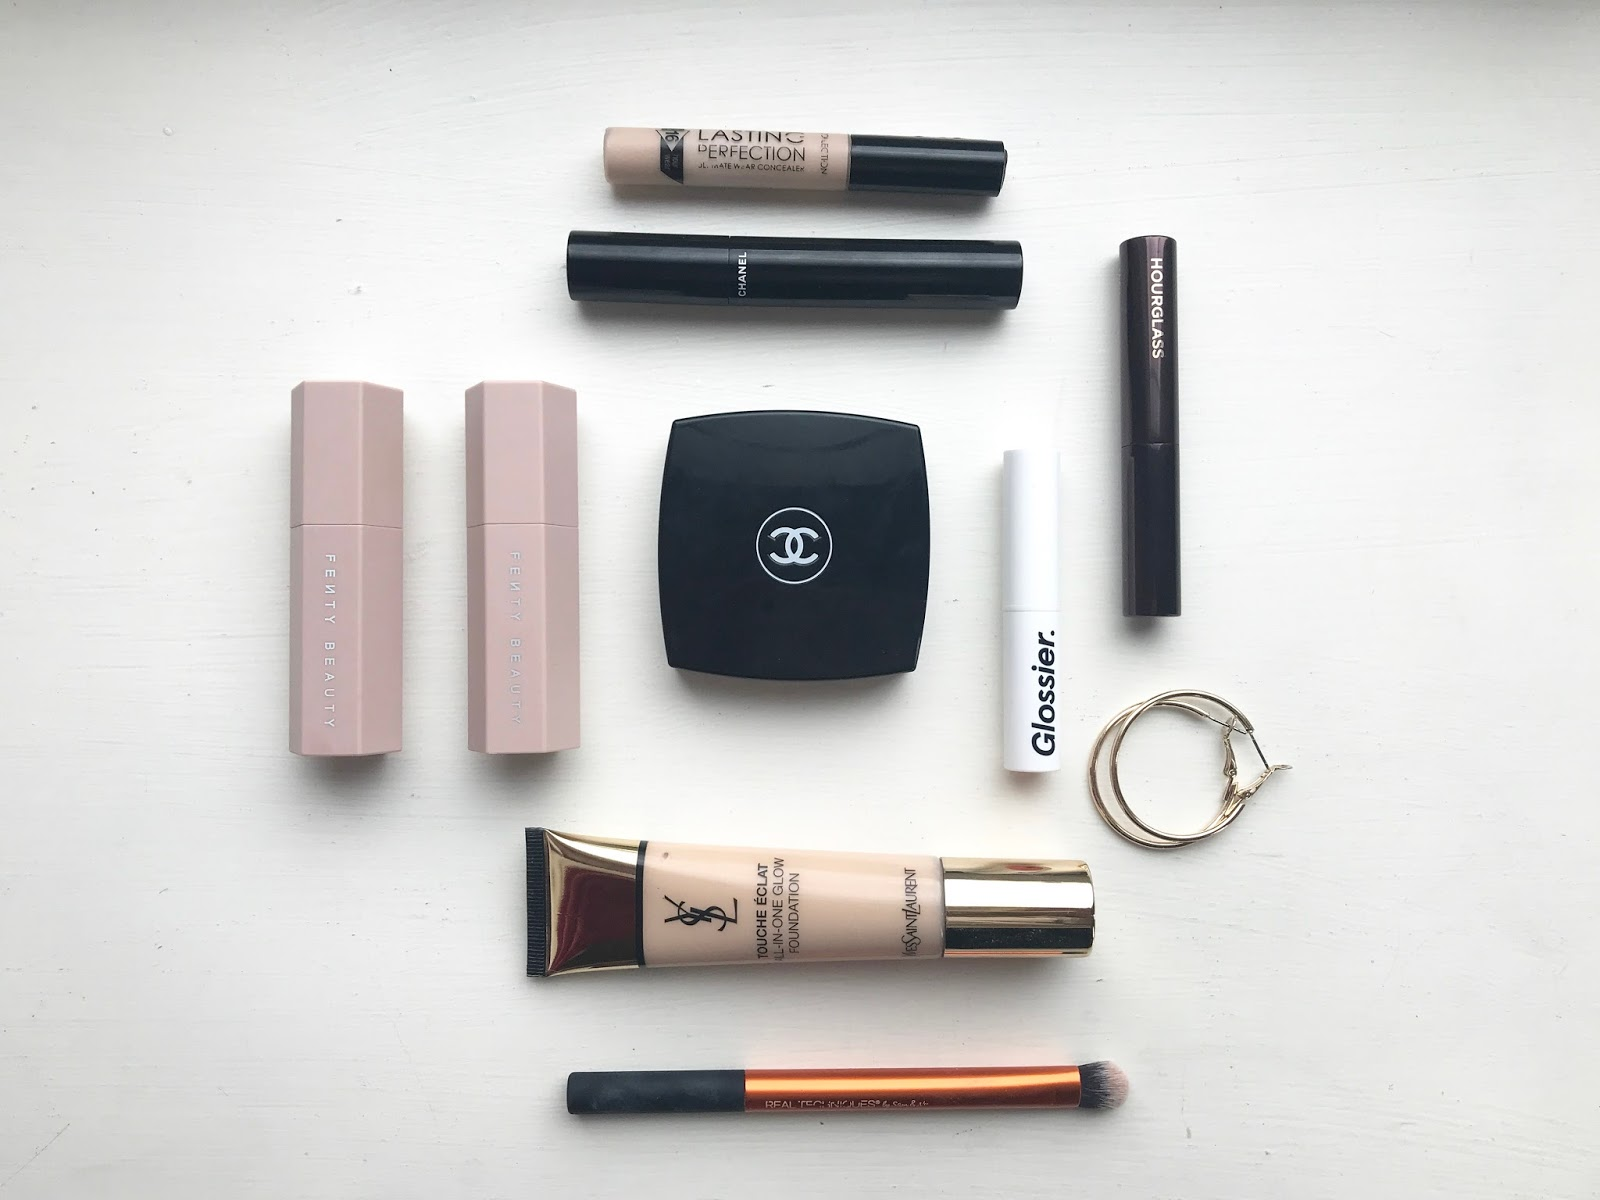 my weekend away capsule makeup collection + some new bits and bobs